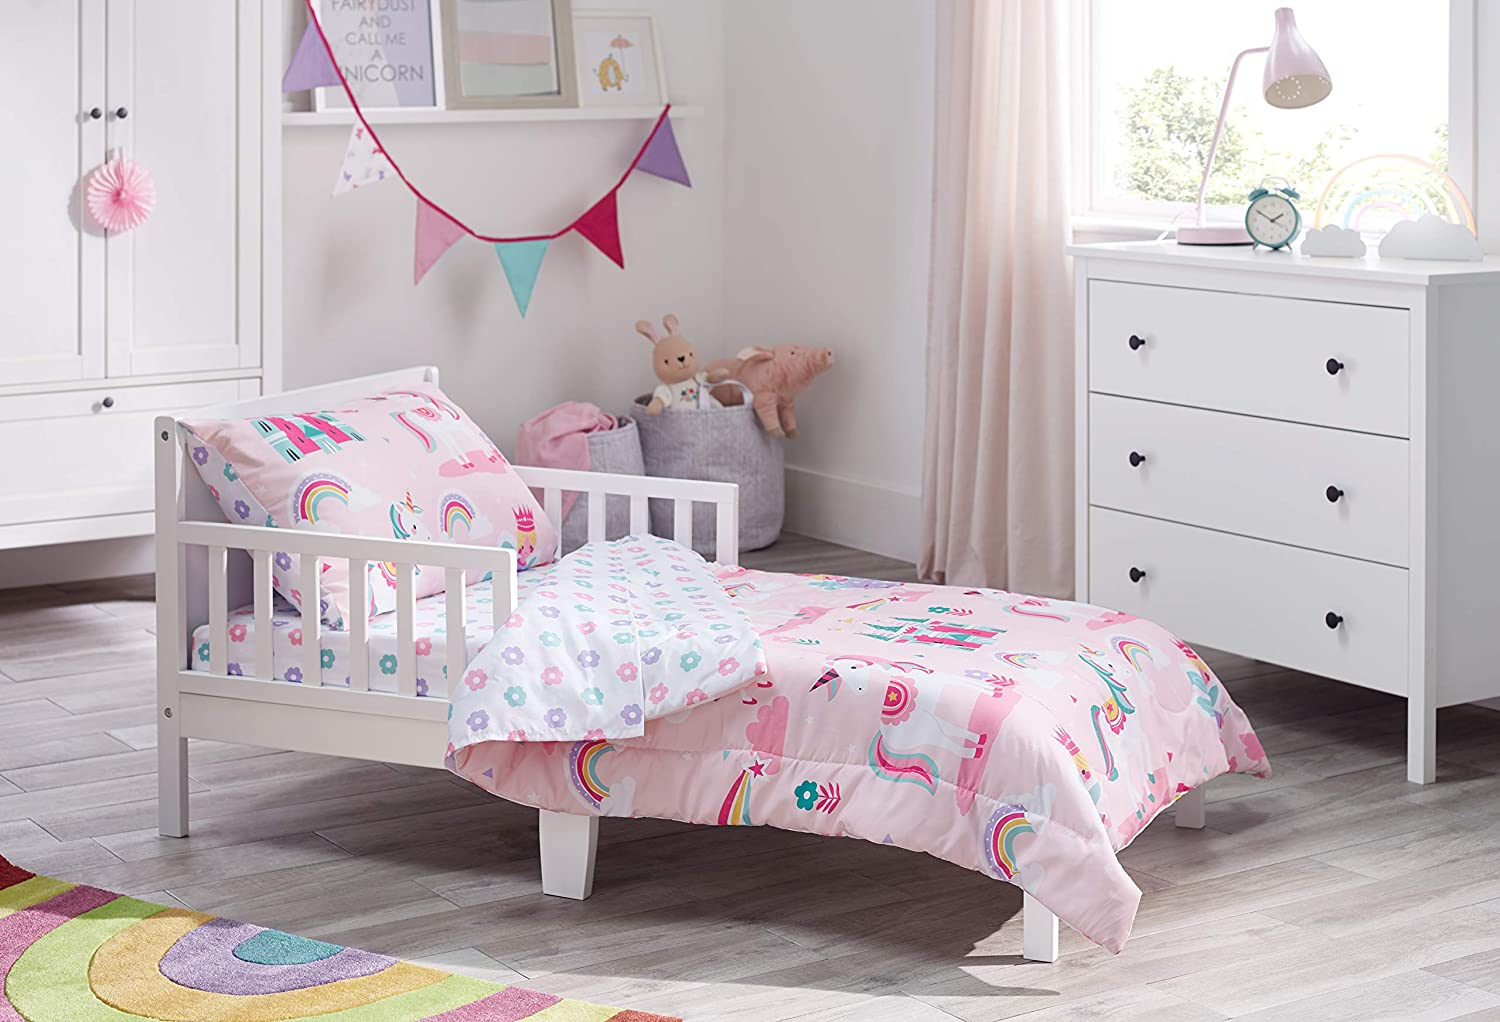 Amazon Com Bloomsbury Mill 4 Piece Toddler Comforter Set Magic Unicorn Fairy Princess Enchanted Castle Pink Kids Bedding Set Baby